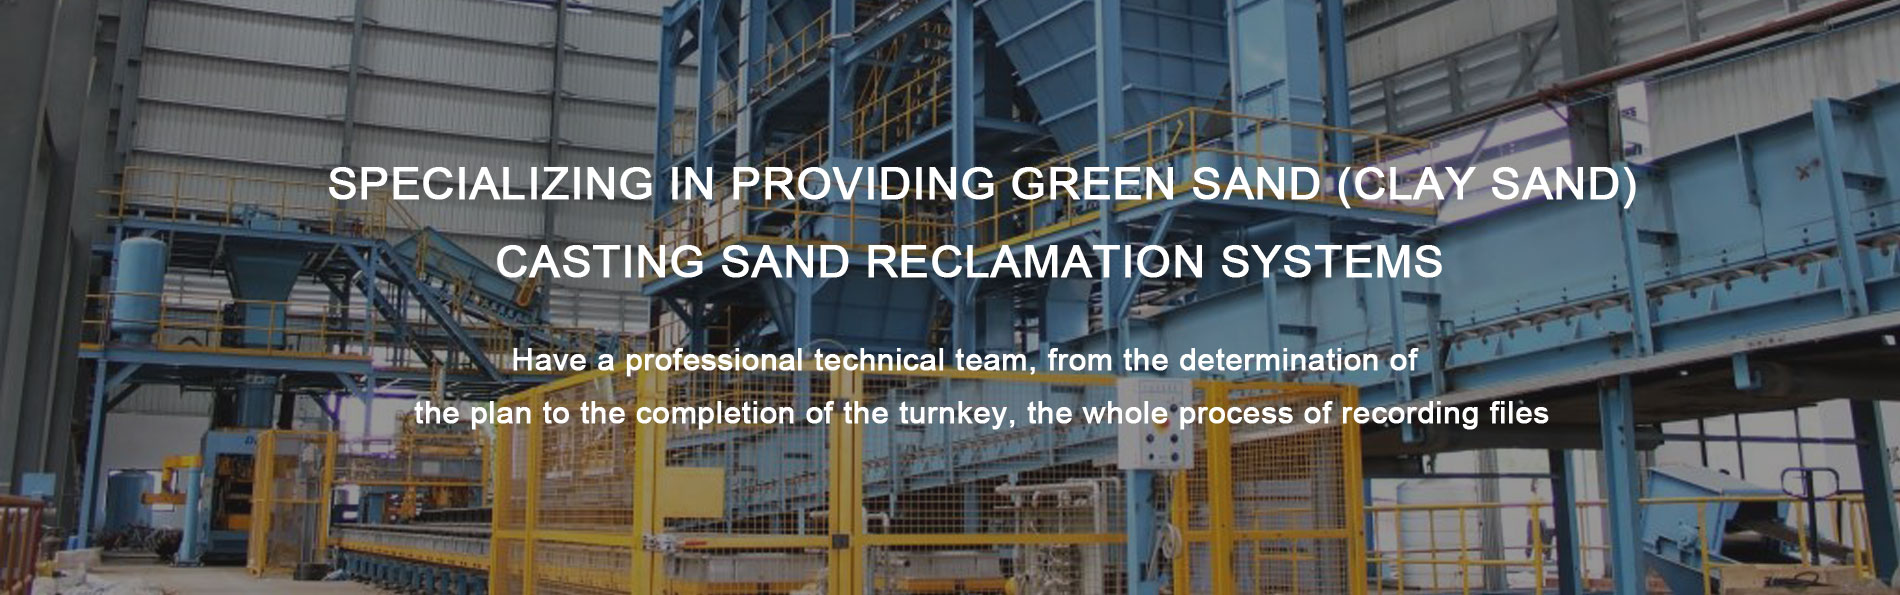 Specializing in providing green sand (clay sand) casting Sand Reclamation Systems